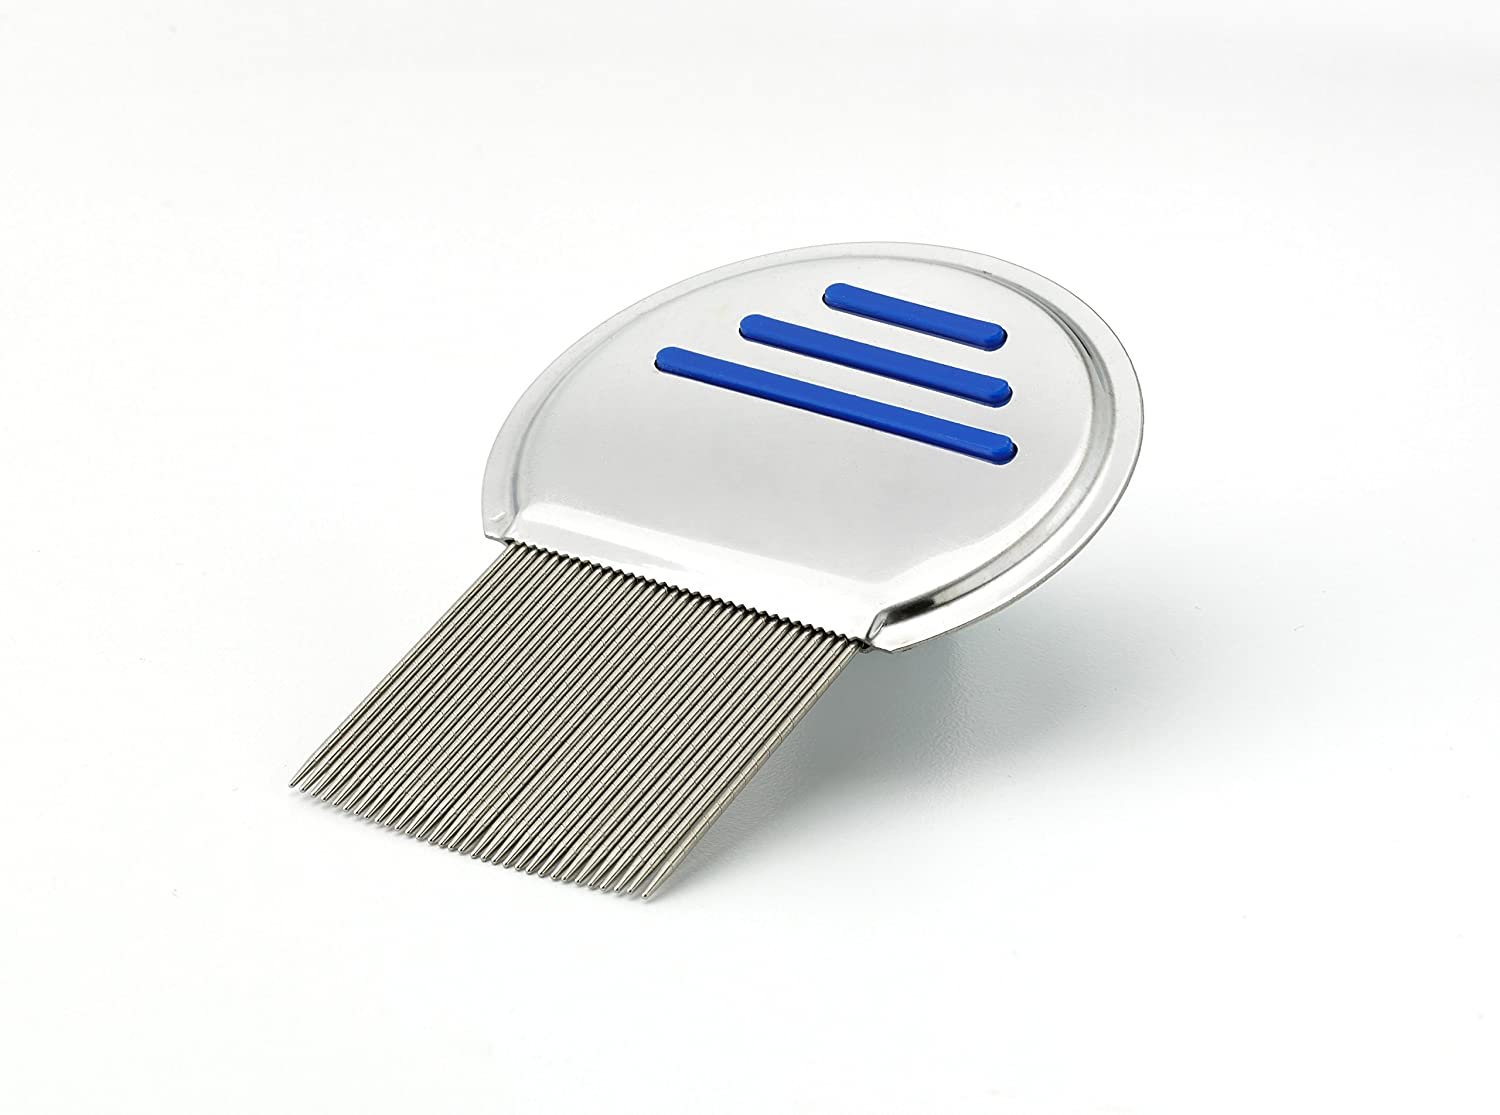 Innova® Anti Lice Comb Hair Nit Comb Head Lice Comb Stainless Steel Metal Teeth Innova Brands Ltd.